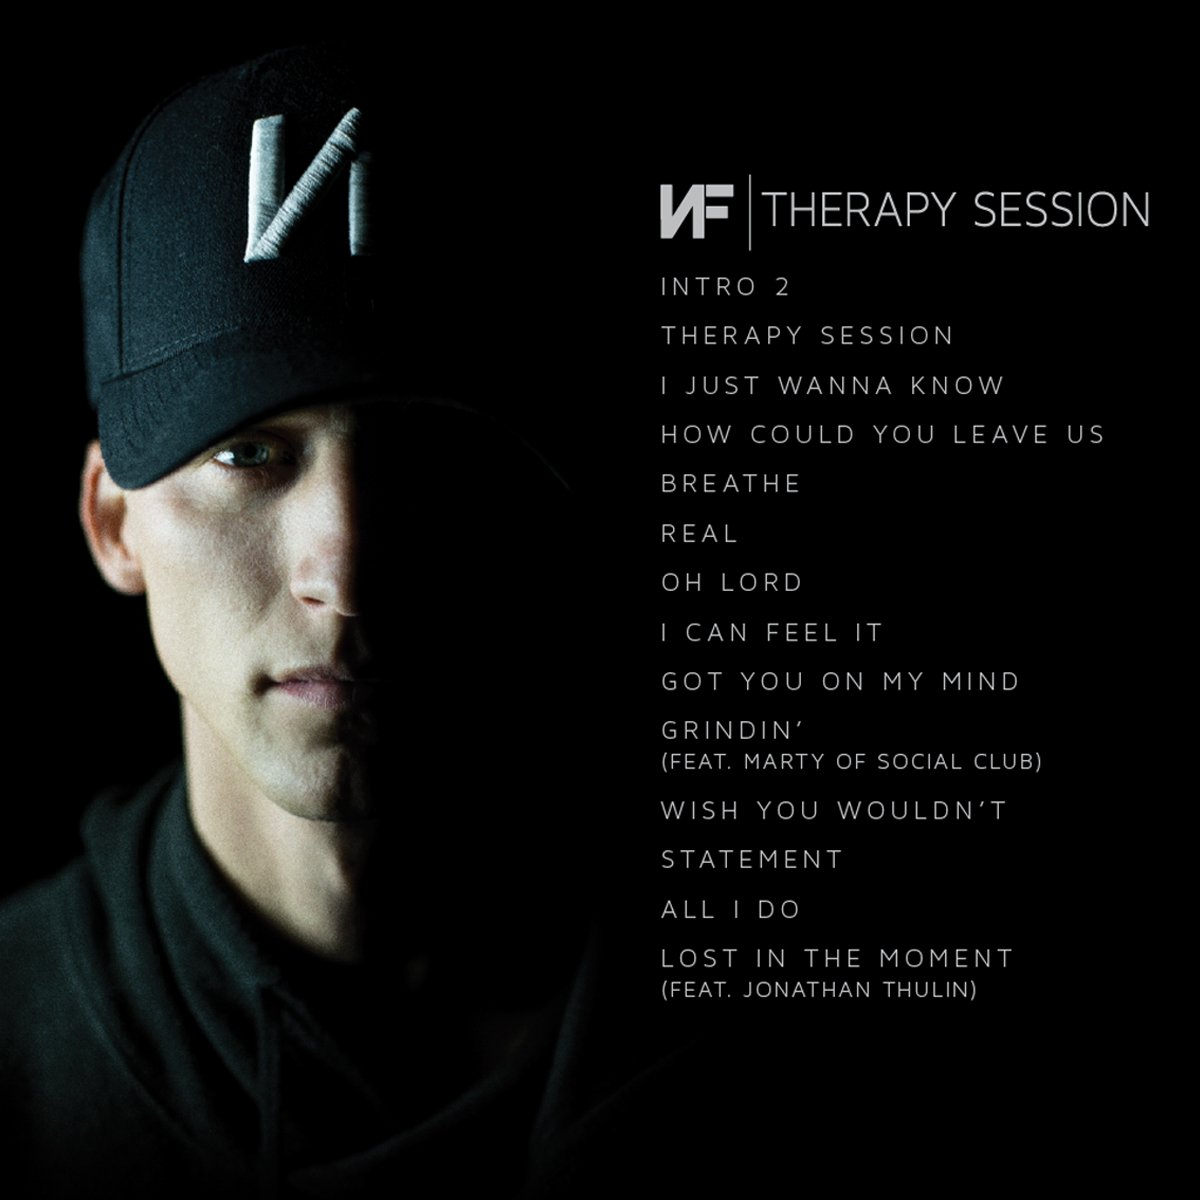 Therapysession April 22 2016pic Twitter Aywllne4a6